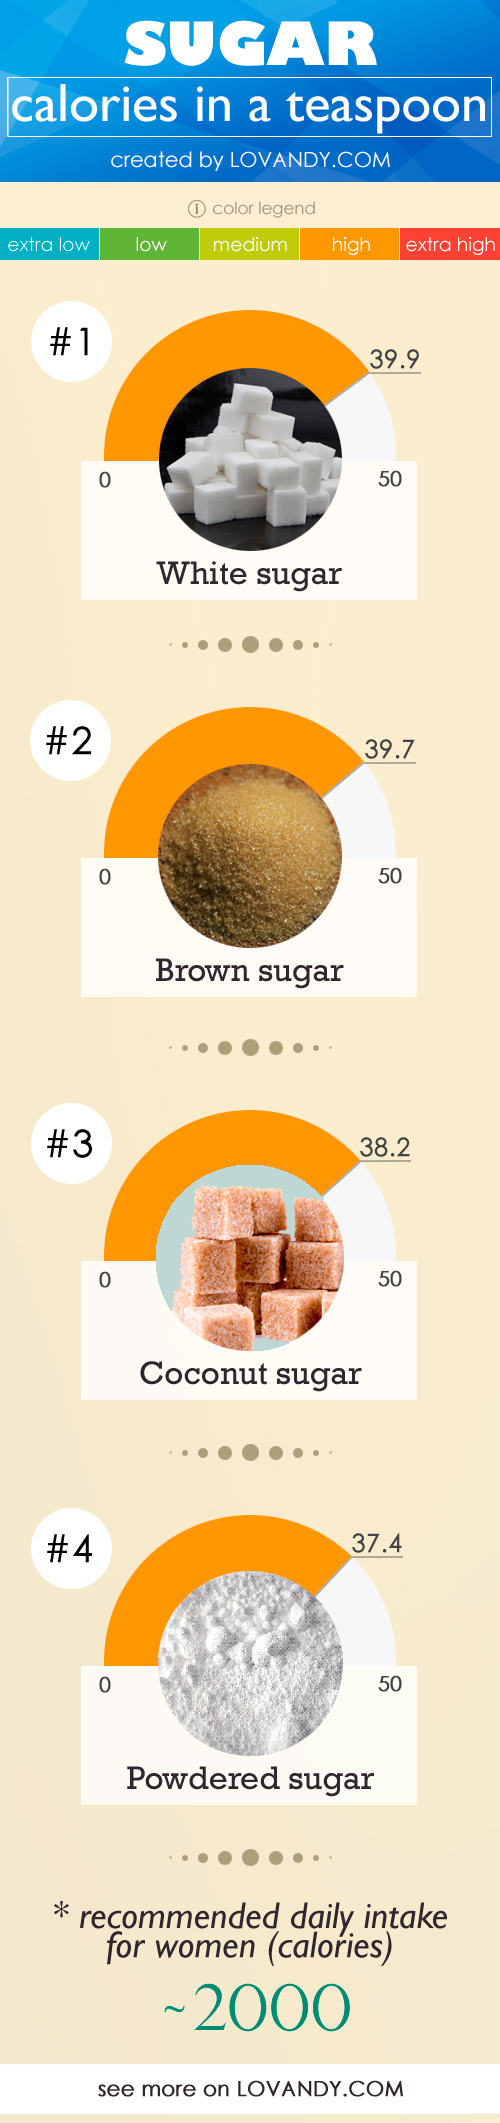 how many calories in a teaspoon of sugar